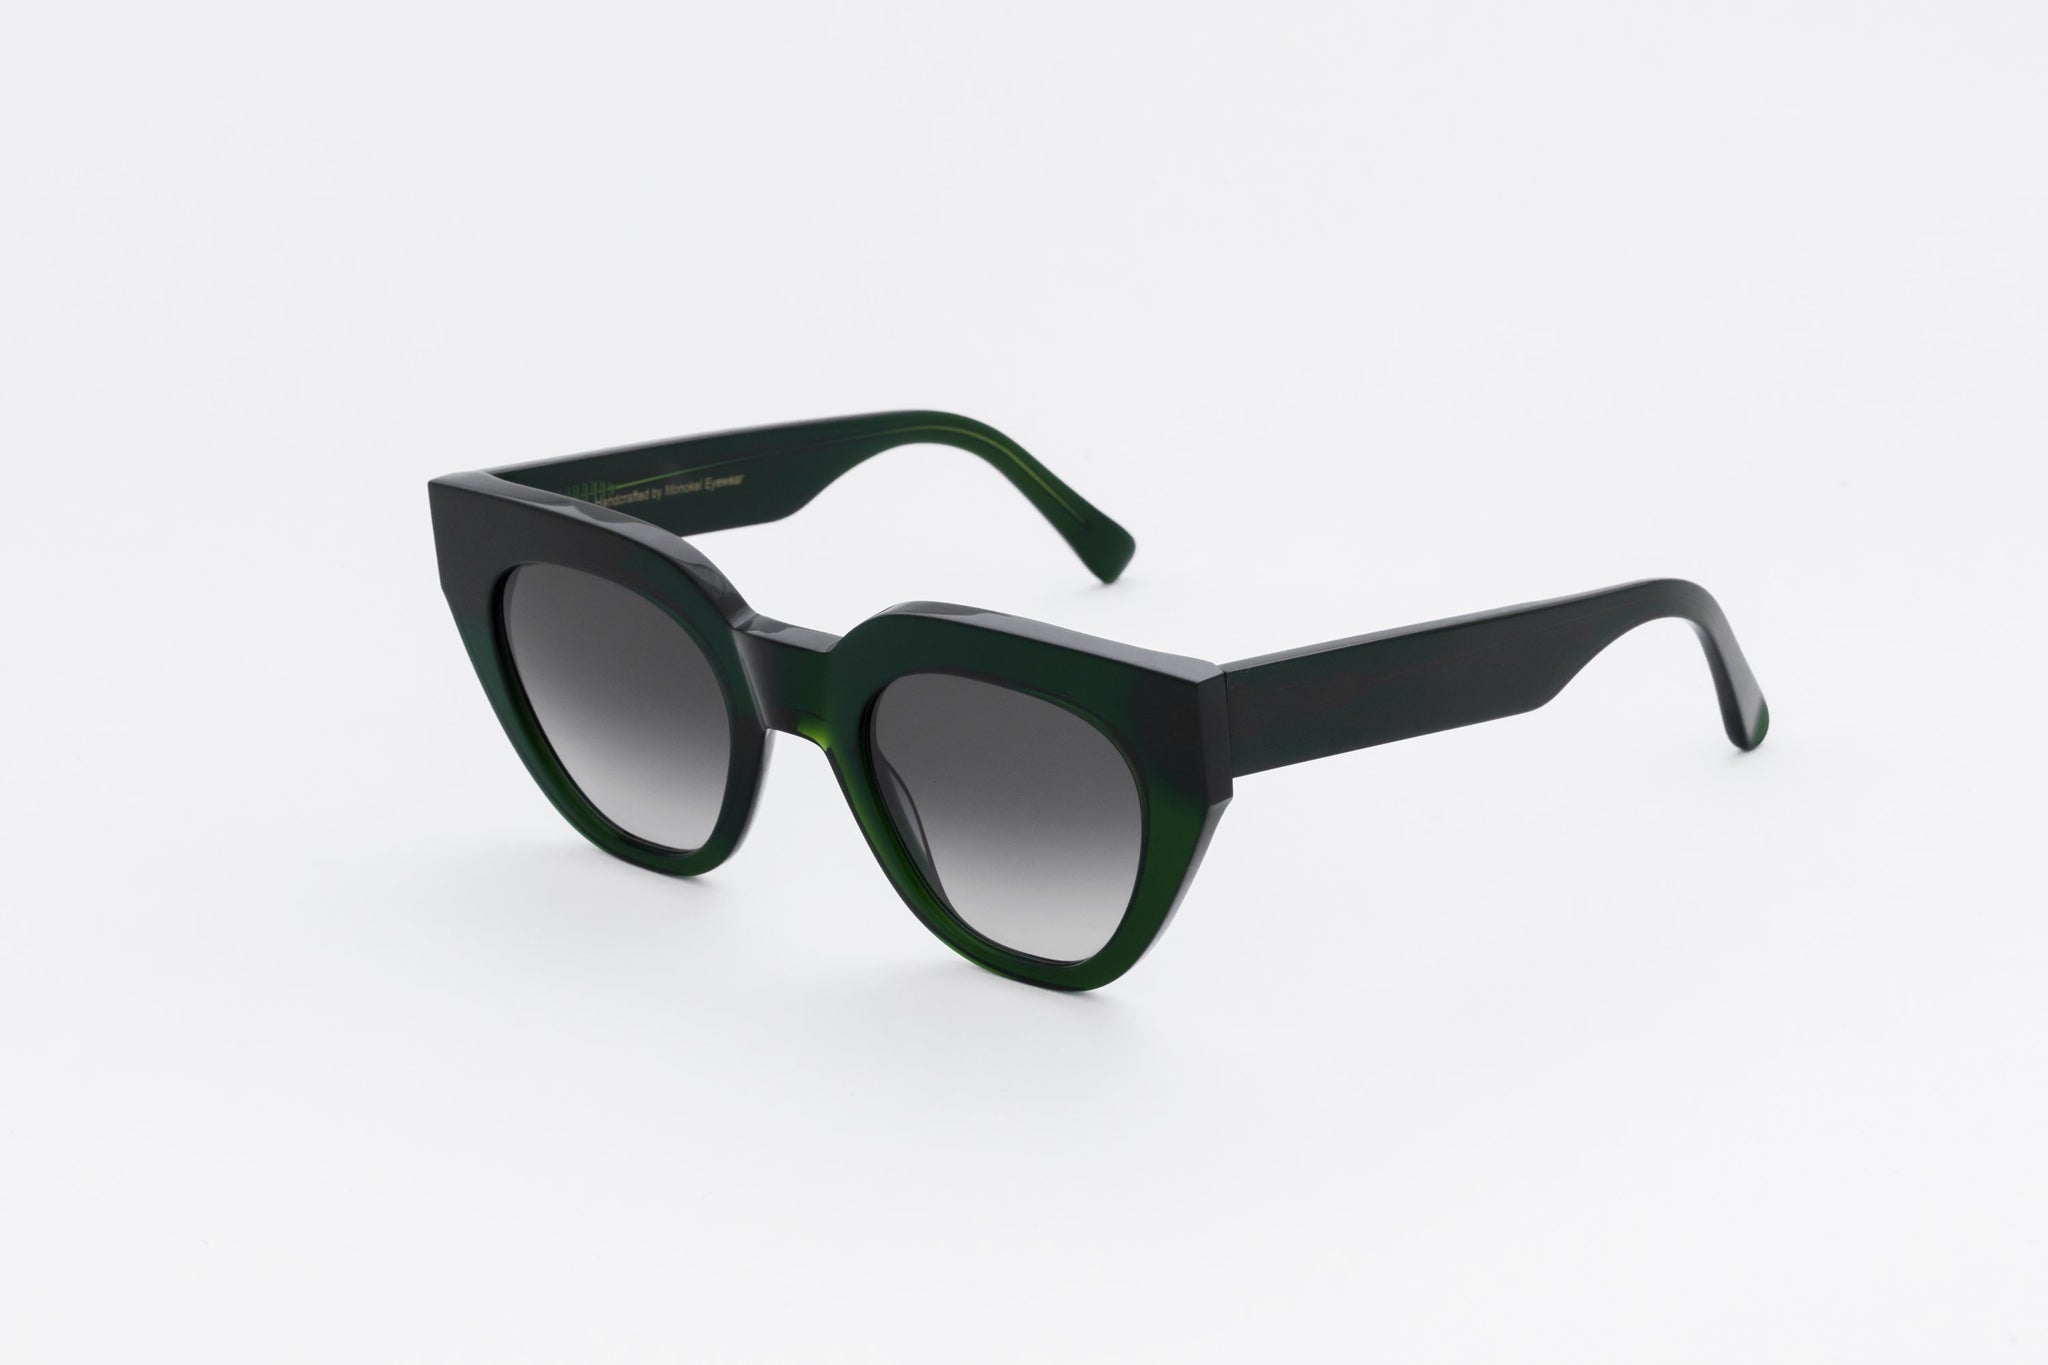 monokel eyewear sunglasses hilma bottle green / grey gradient lens